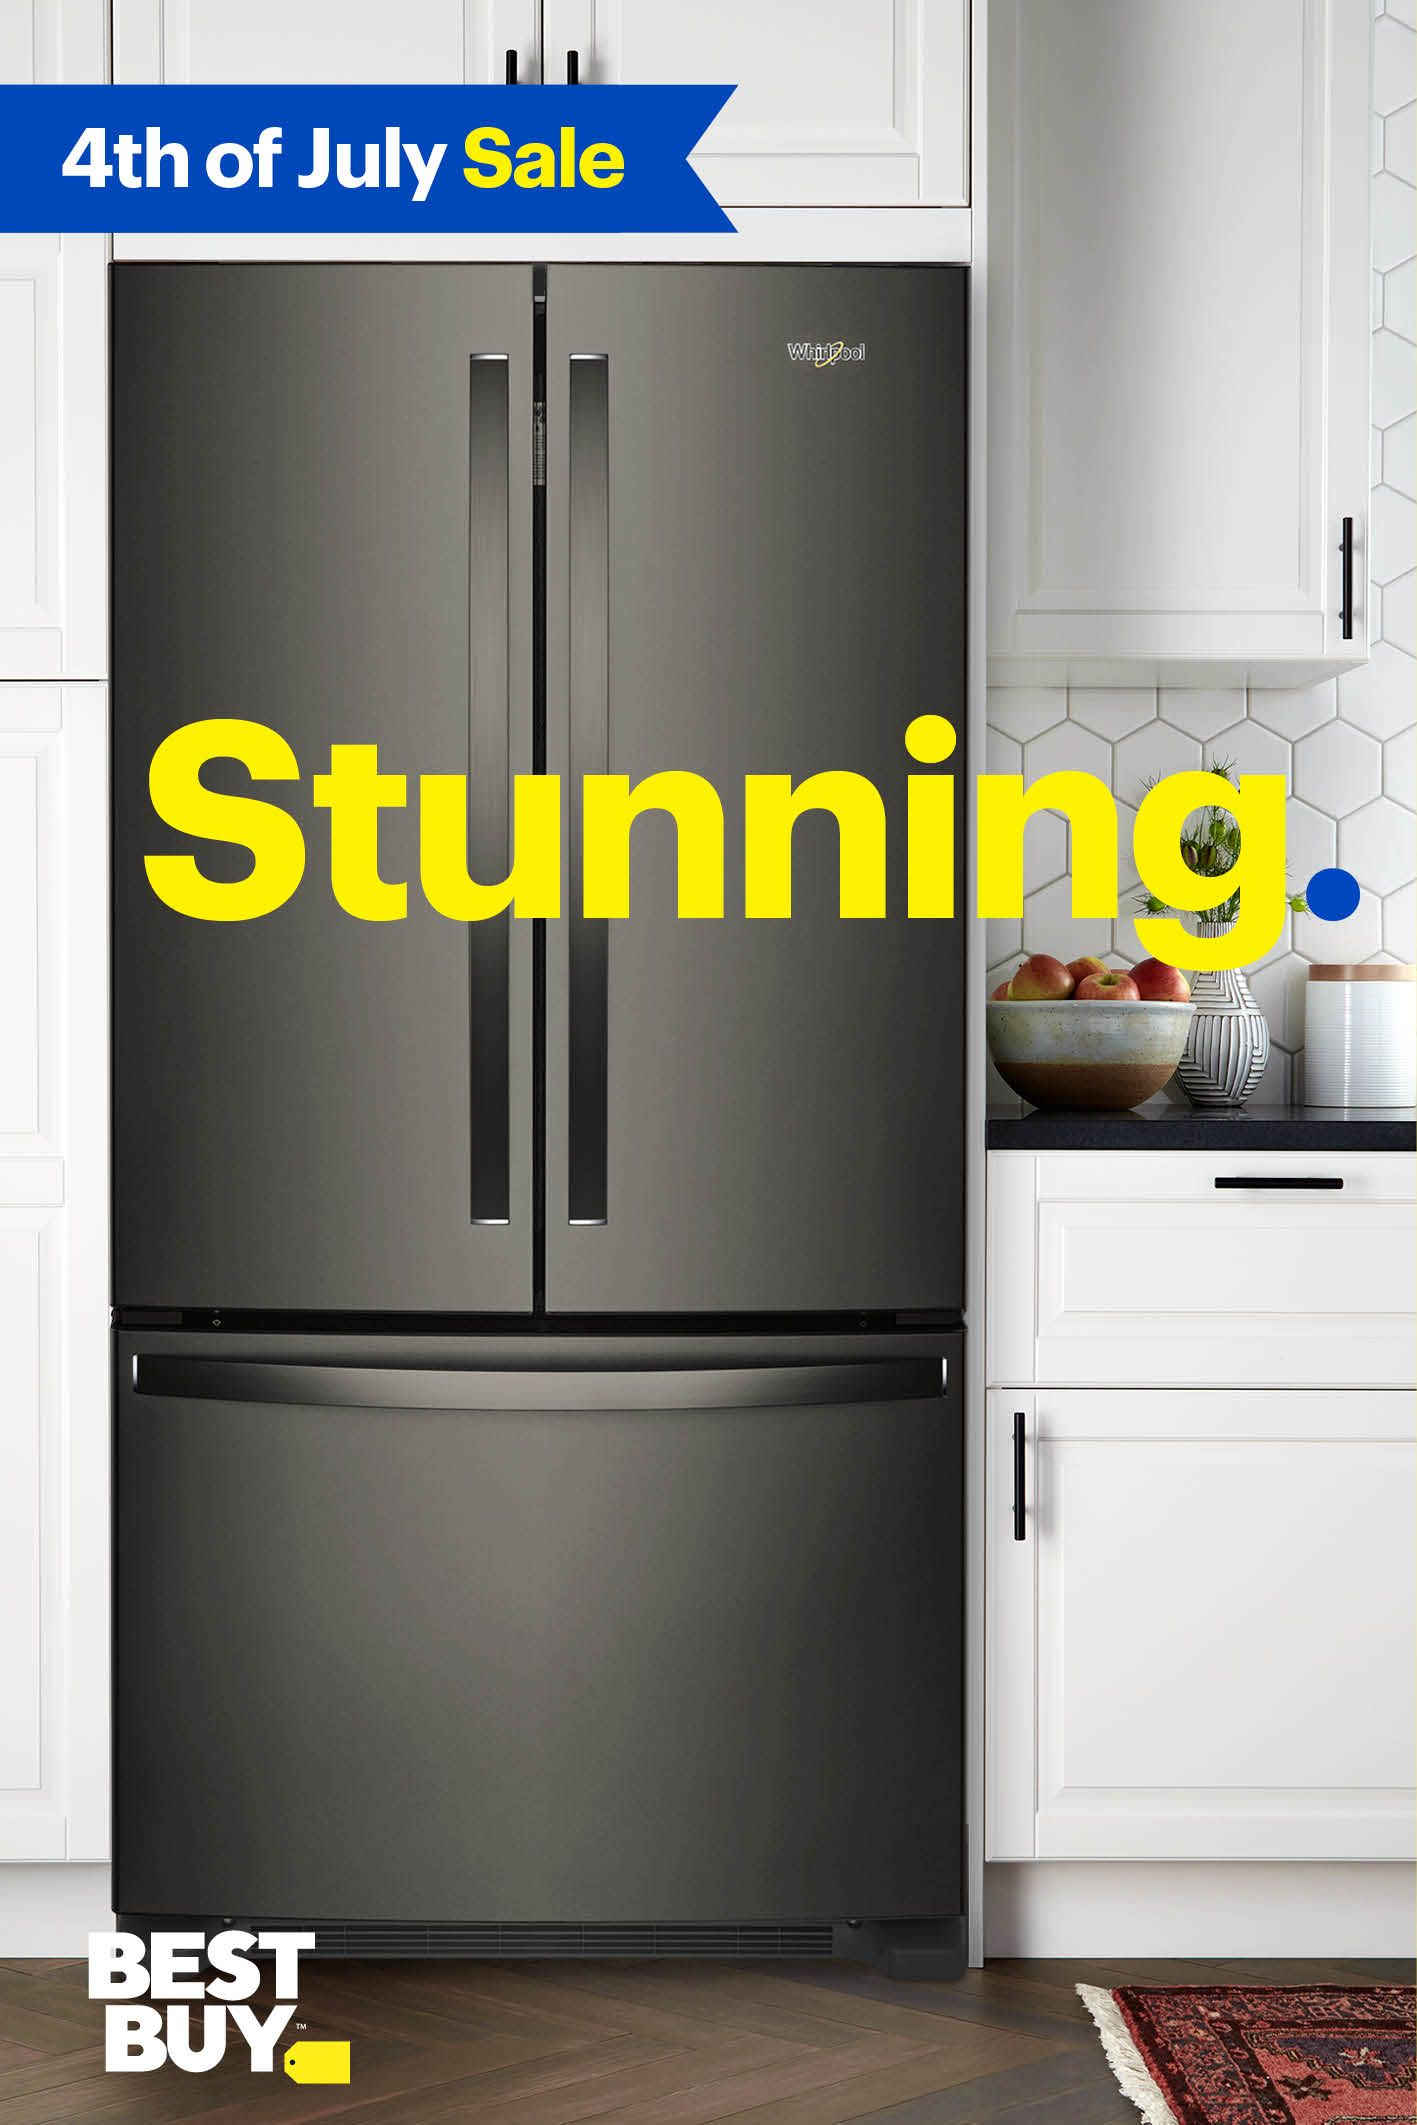 Whirlpool Black Stainless Is Not Only Easy On The Eyes,